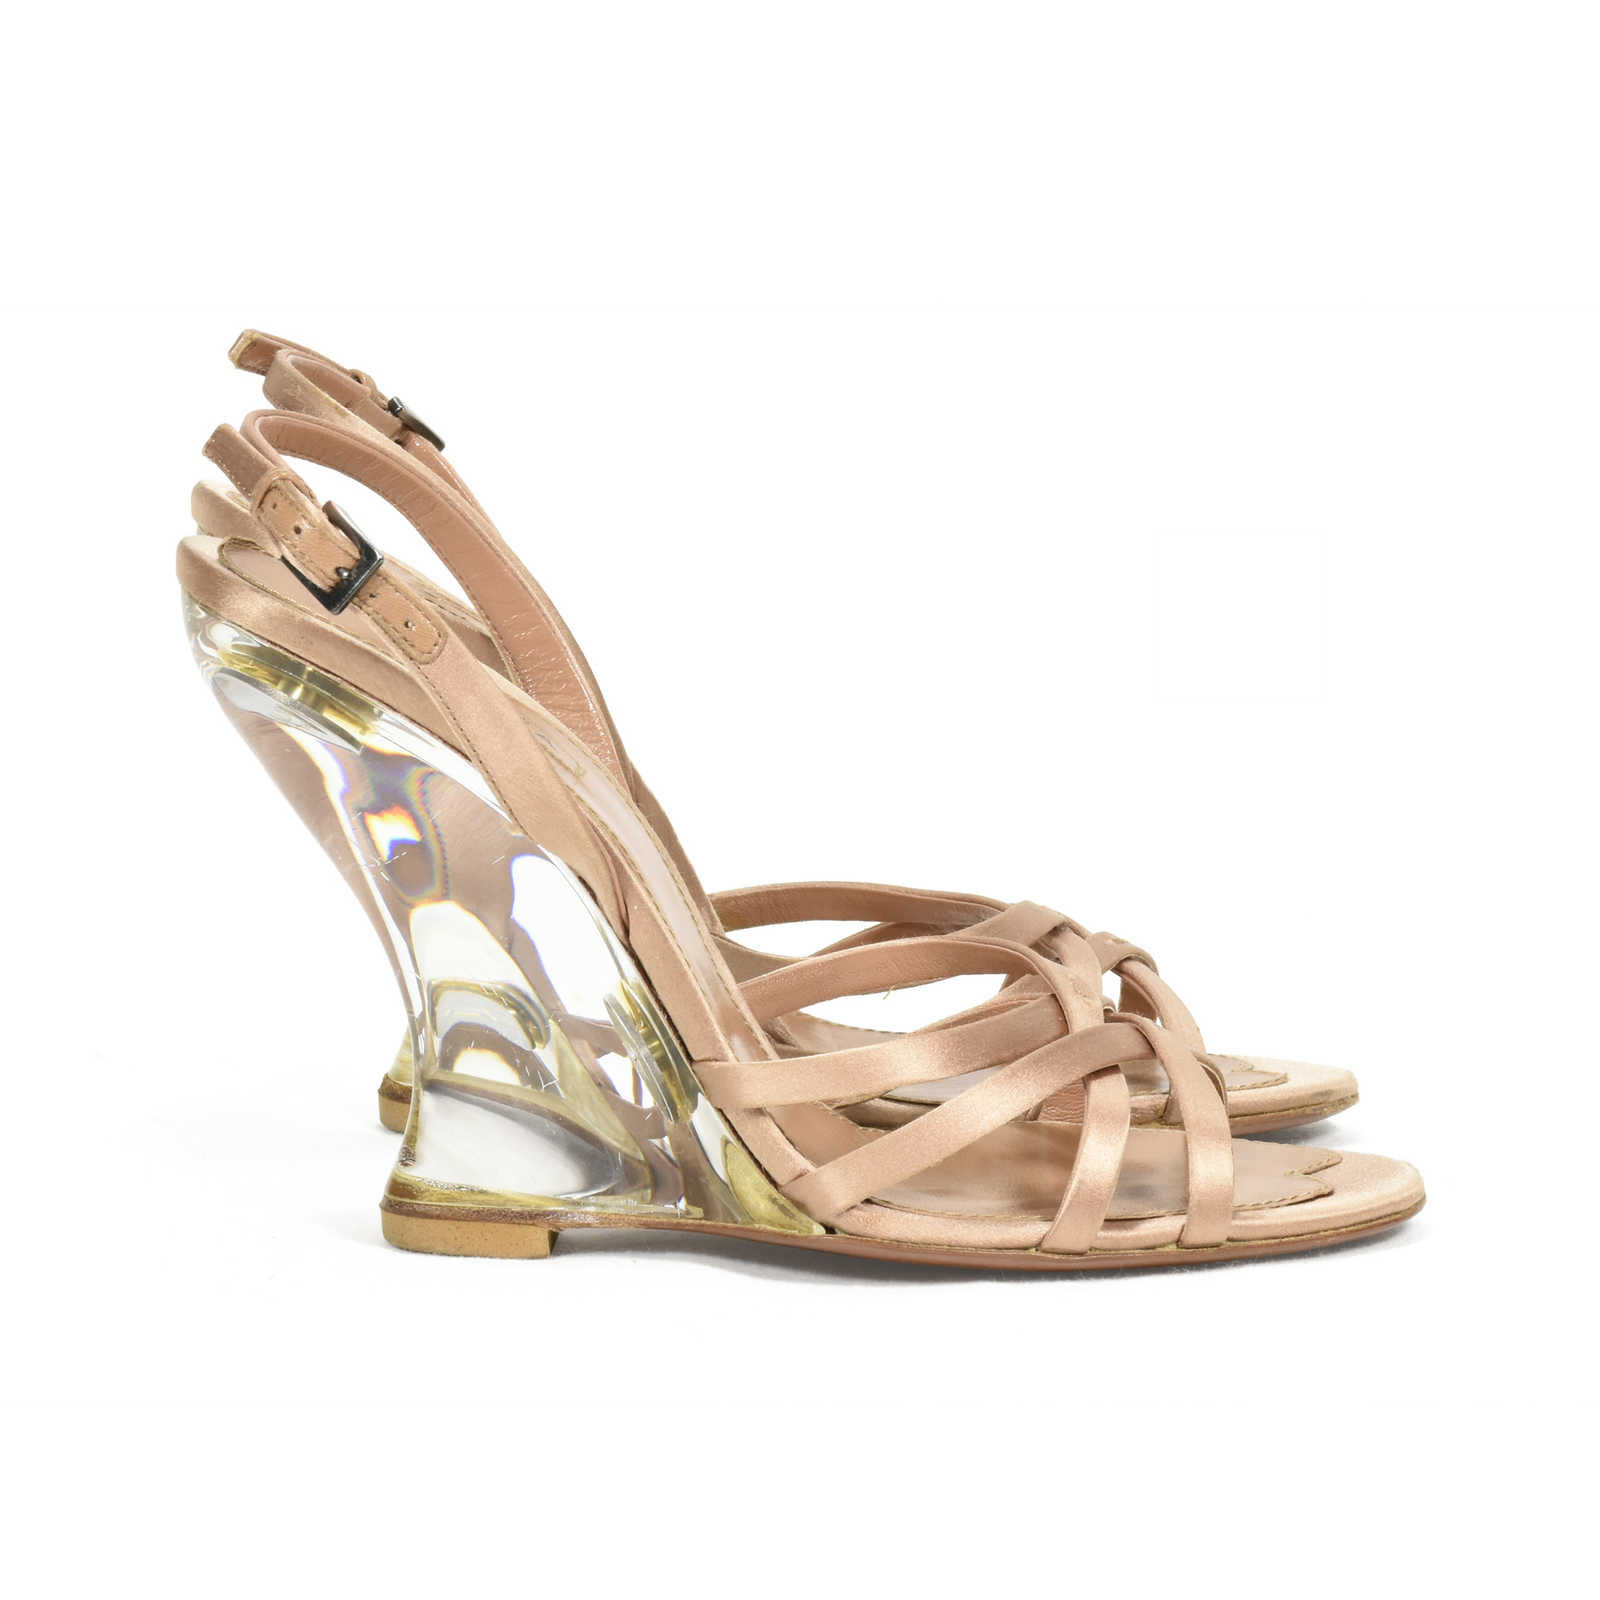 Alaïa Satin Wedge Sandals For Sale Buy Authentic Online Buy Cheap The Cheapest Cheap Sale Sneakernews Sale Get To Buy W5FkJJBL